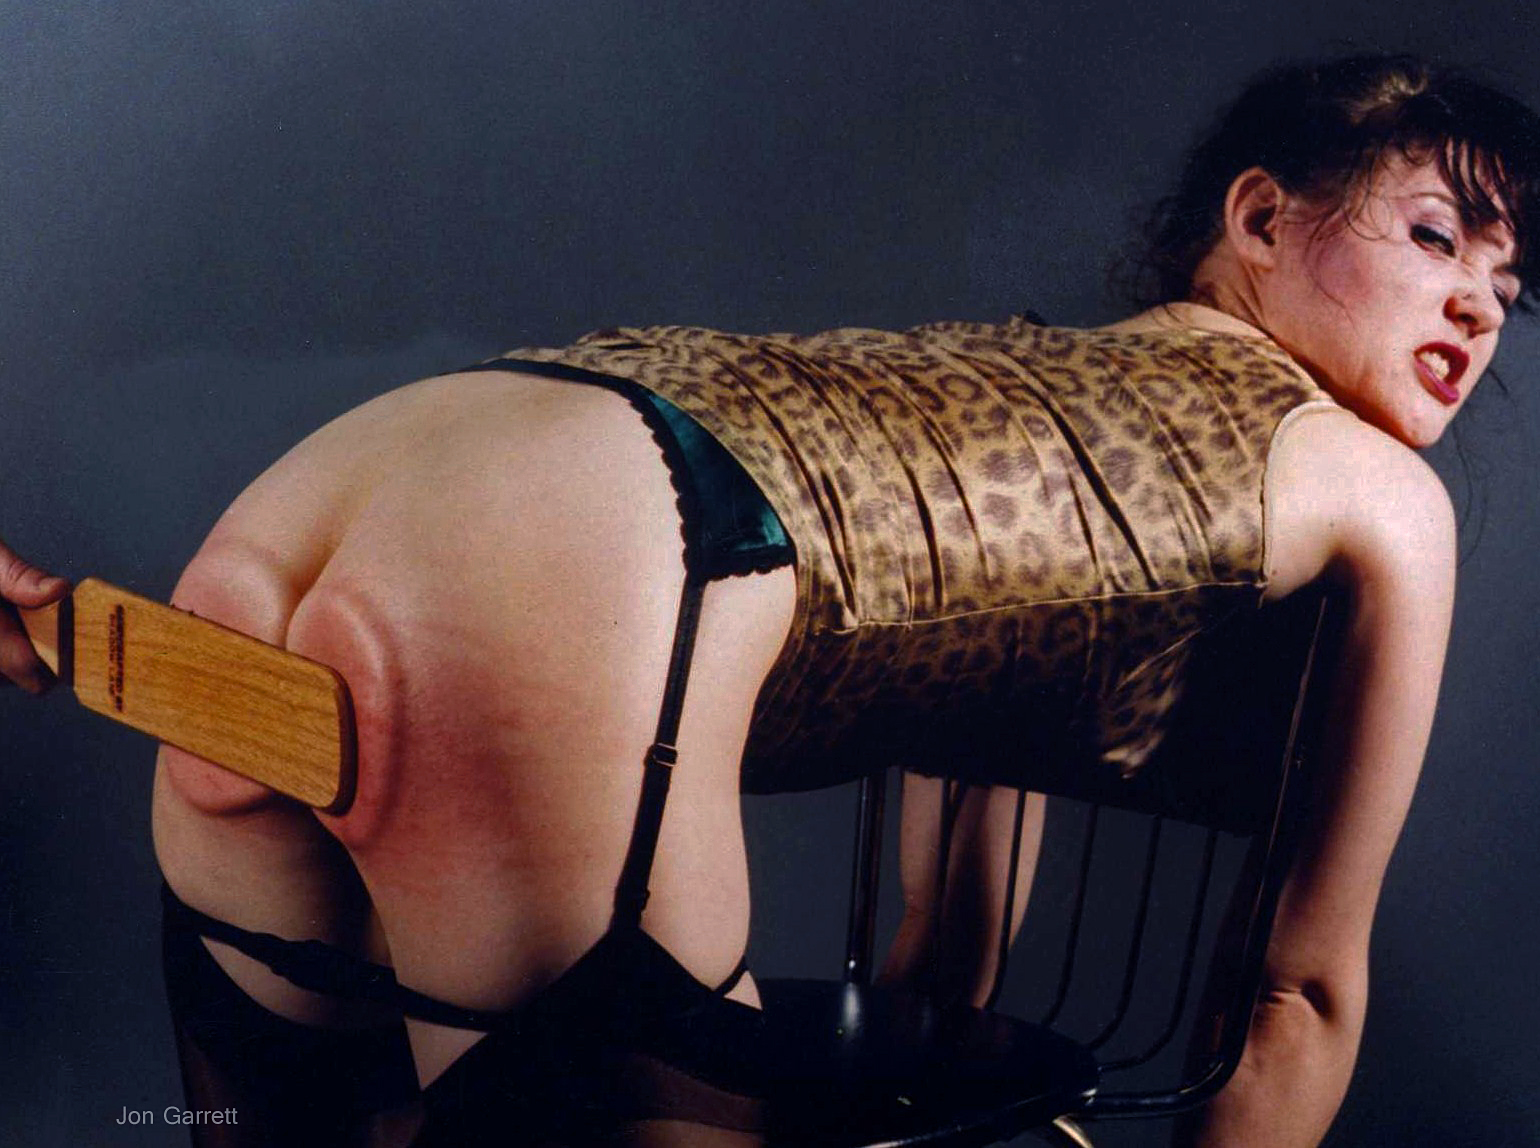 Rare vintage spanking photos by Jon Garrett Photographer